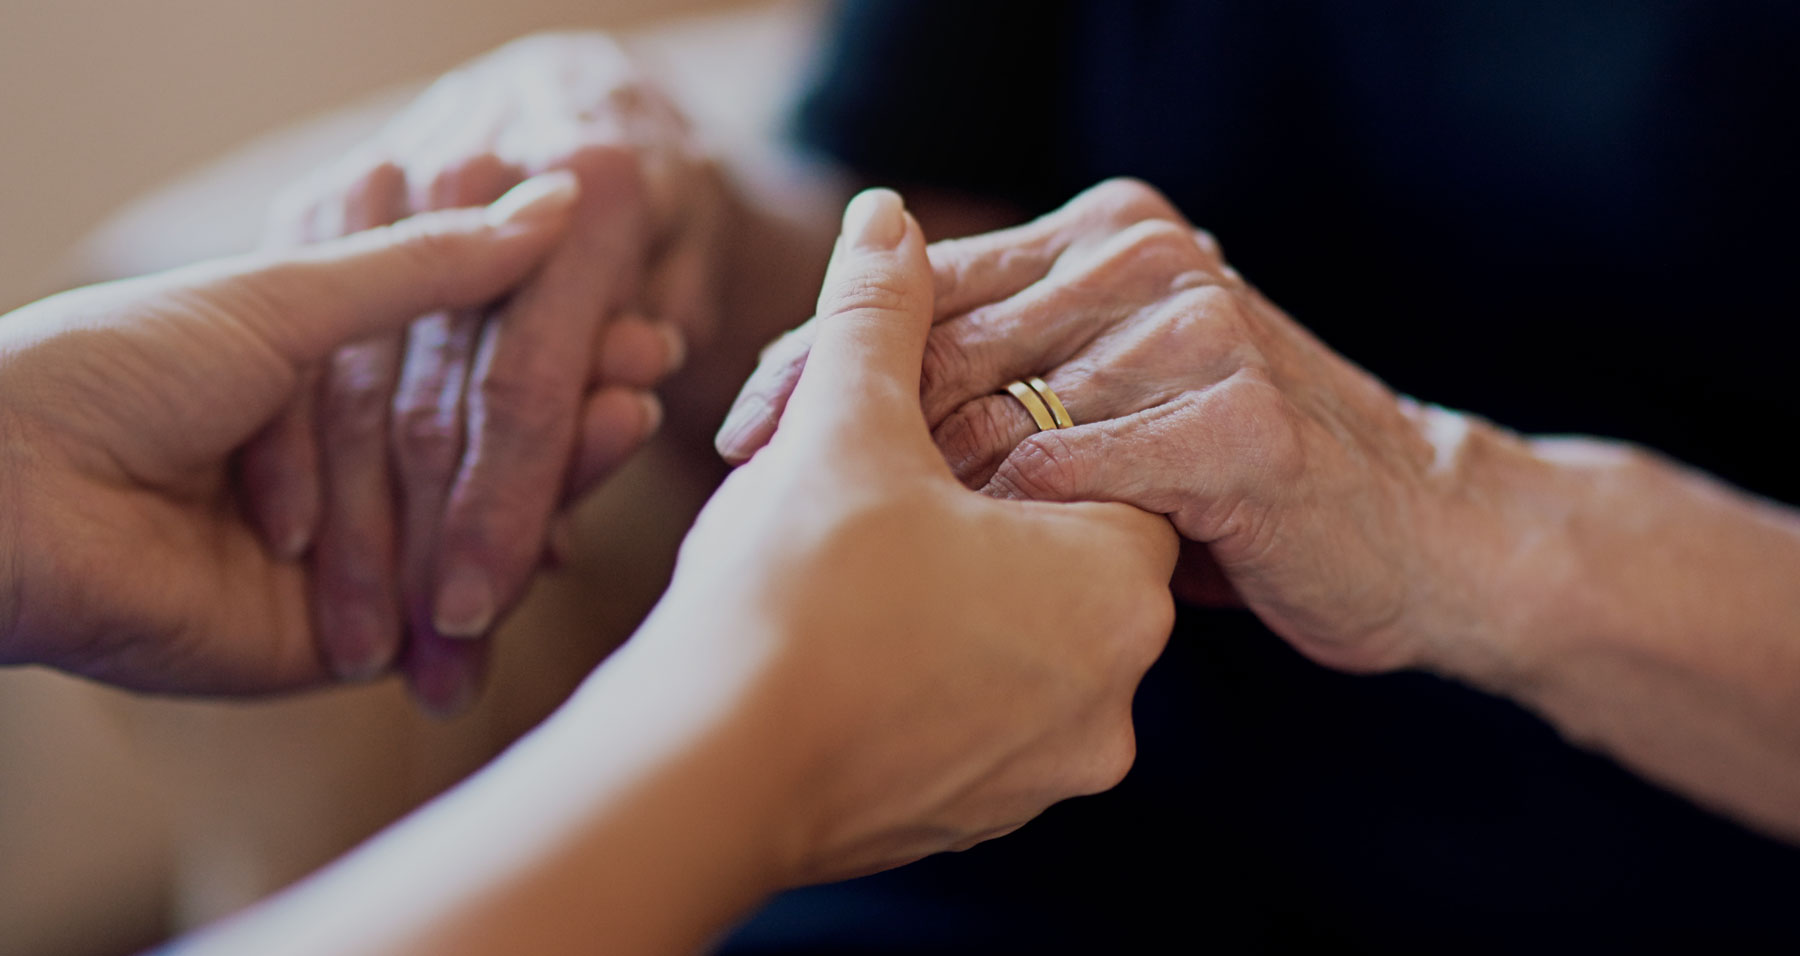 Healing Hands for Palliative Care